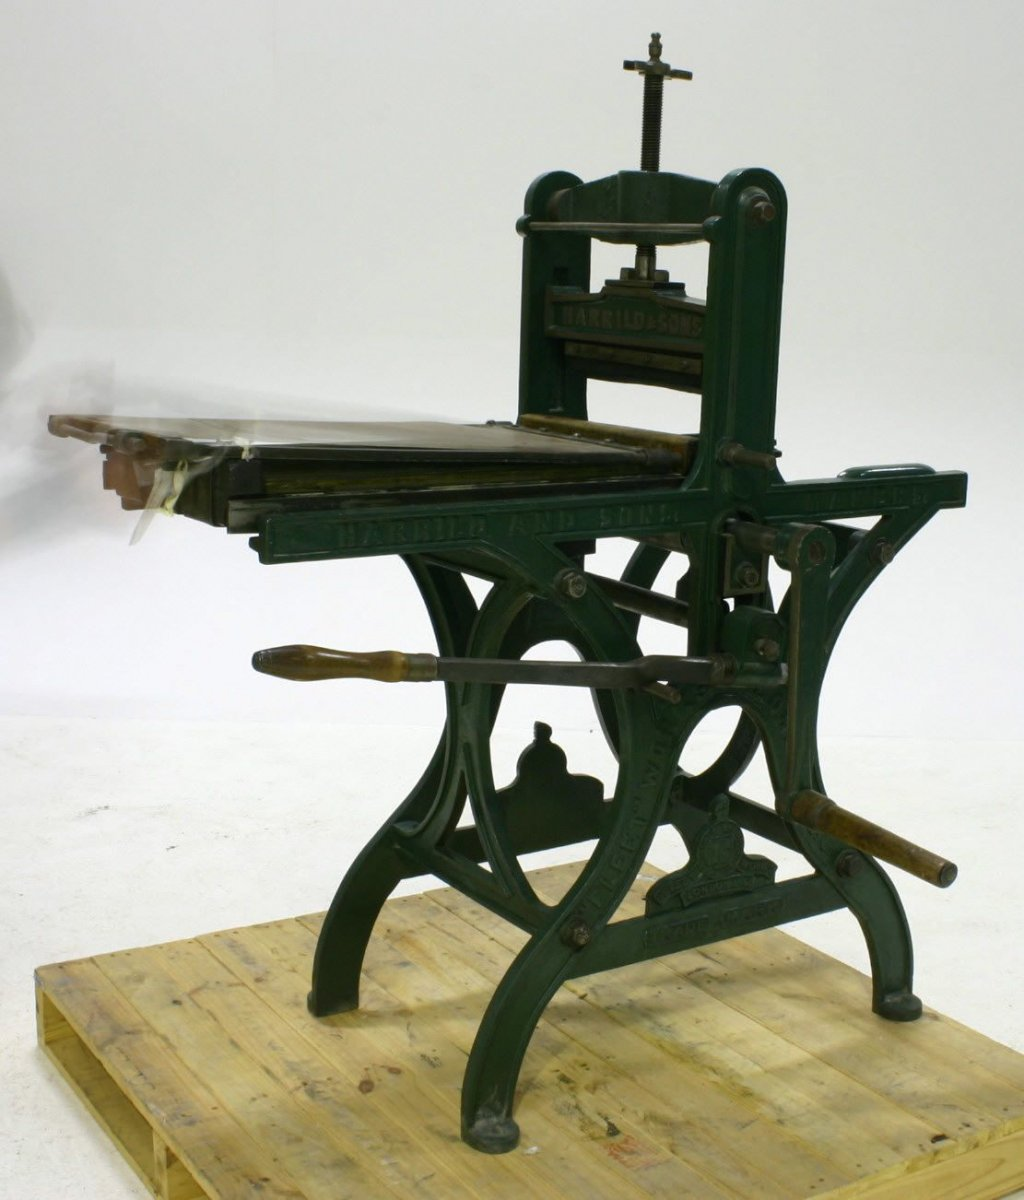 A lithographic printing press with a green frame and flatbed plate, manufactured by Harrild & Sons.